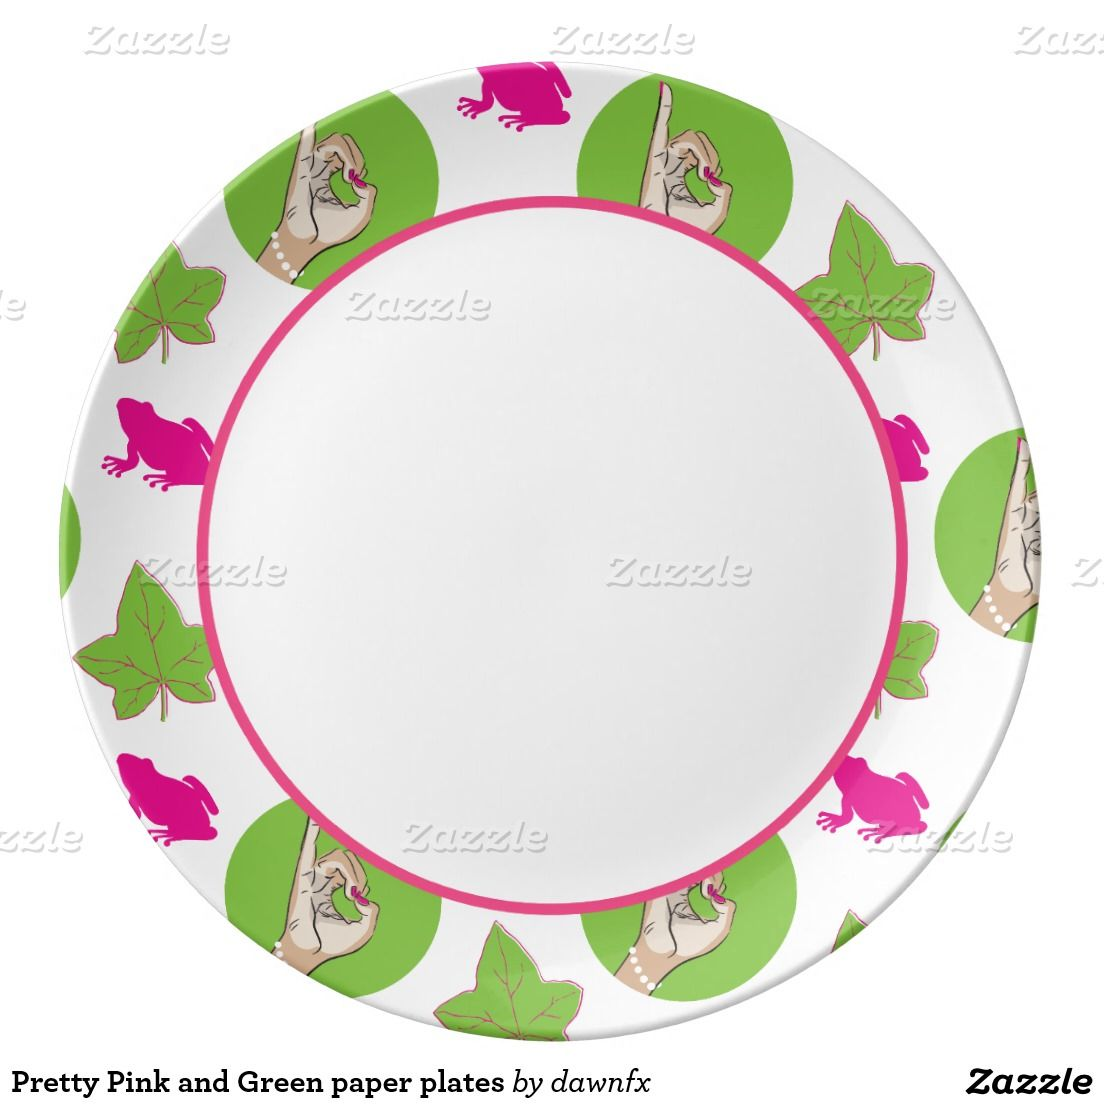 Pretty Pink and Green paper plates Porcelain Plate  sc 1 st  Pinterest & Pretty Pink and green paper plates | Green paper Alpha kappa alpha ...